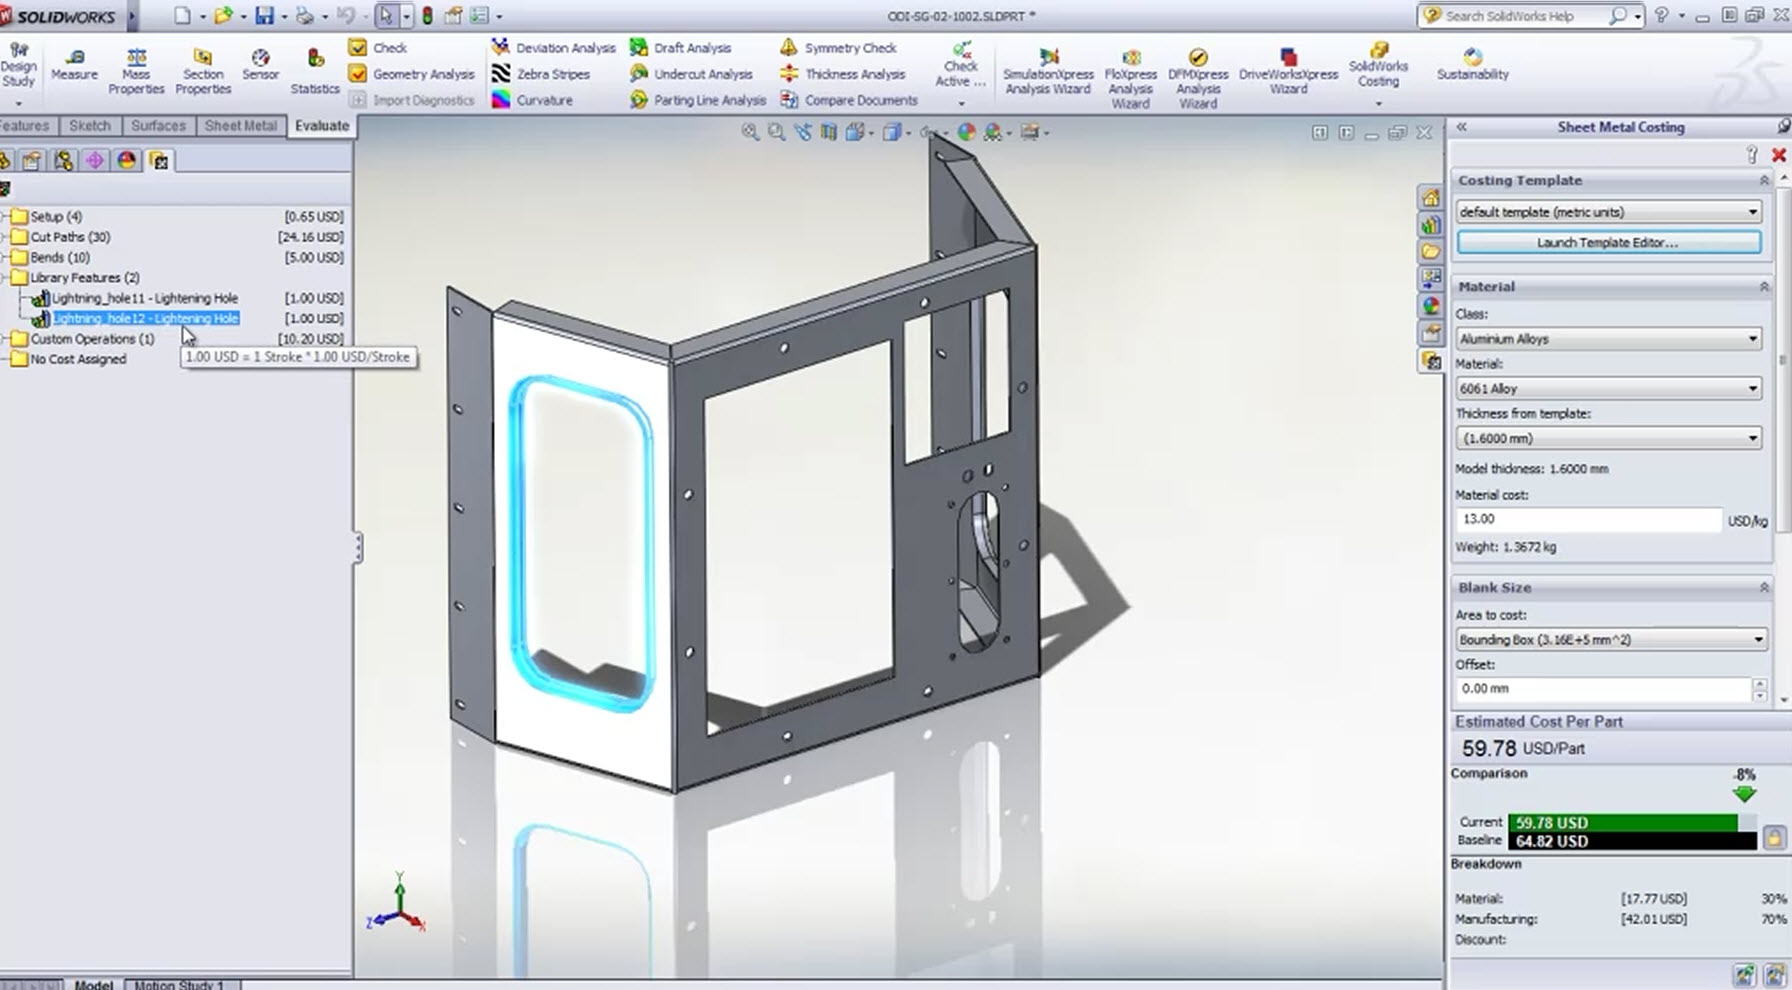 Solidworks 2016 free download with crack 32 bit | SolidWorks